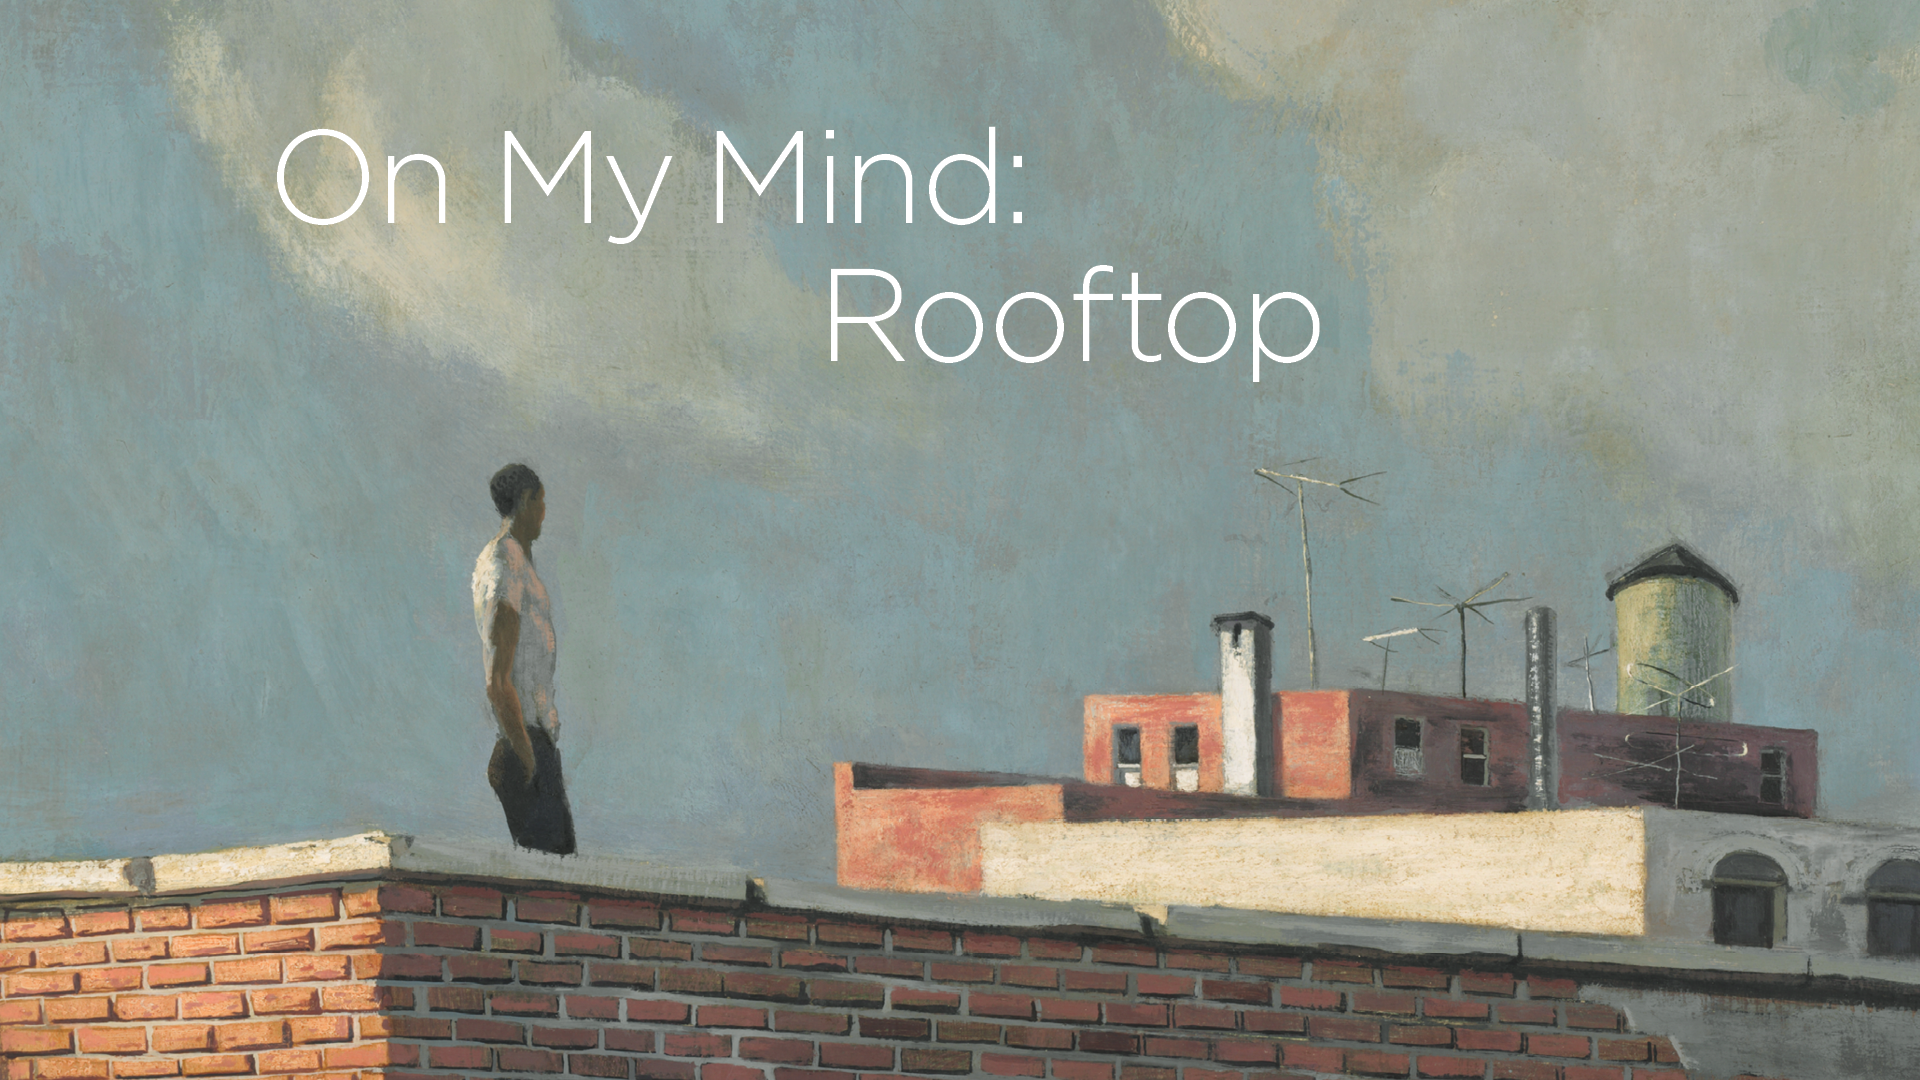 On My Mind: Rooftop